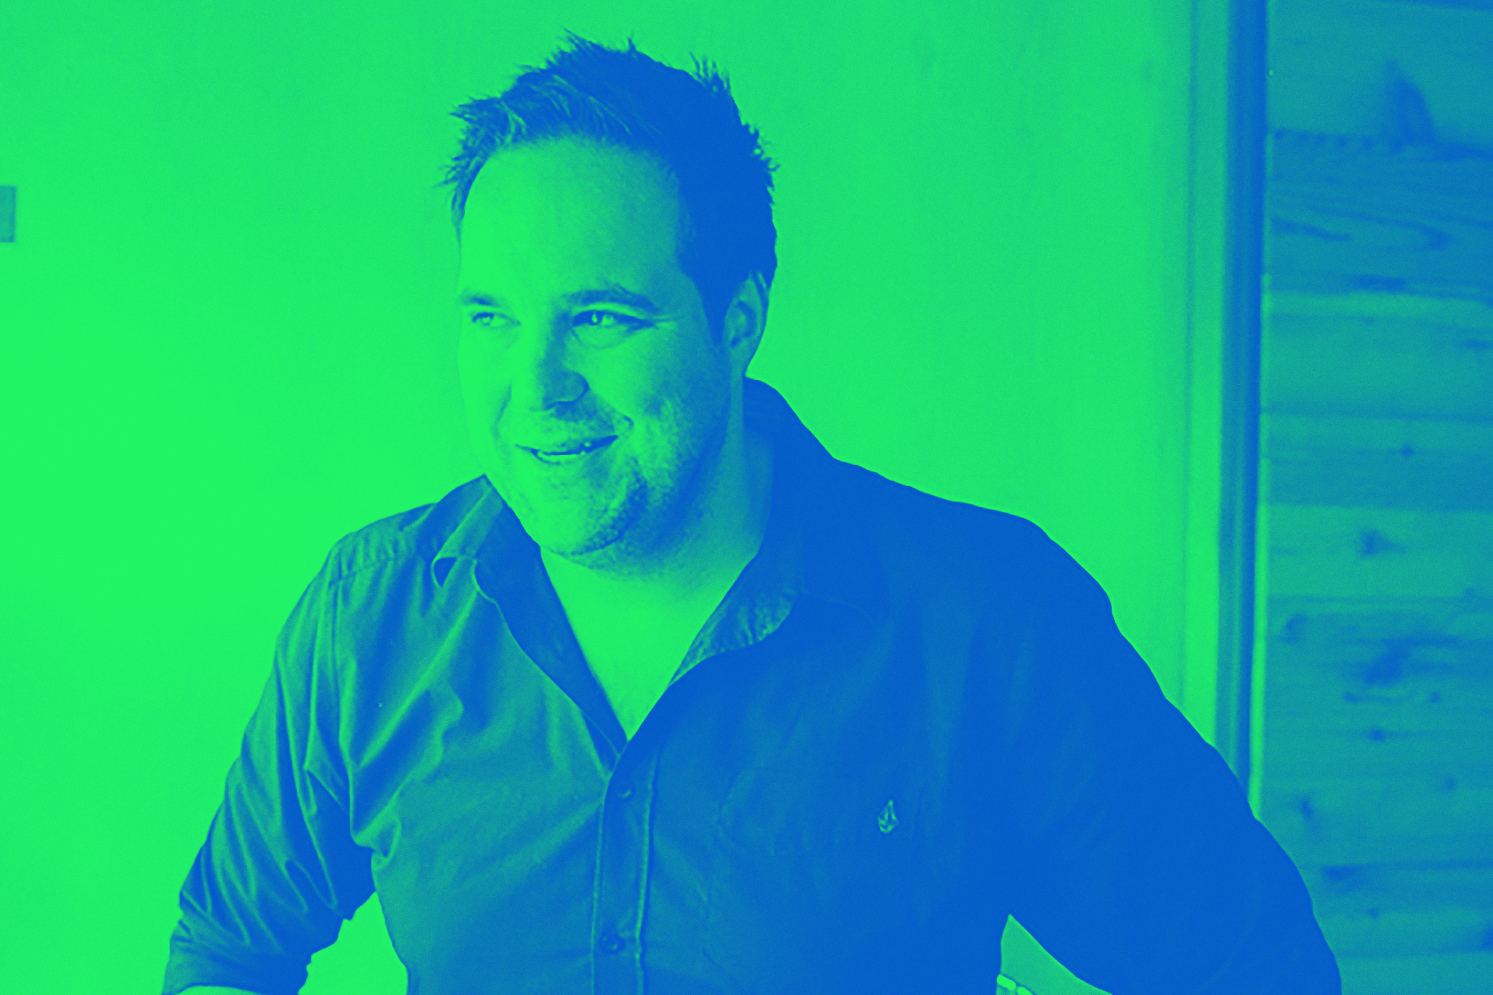 DDB Chicago's John Maxham joins Laughlin Constable as chief creative officer